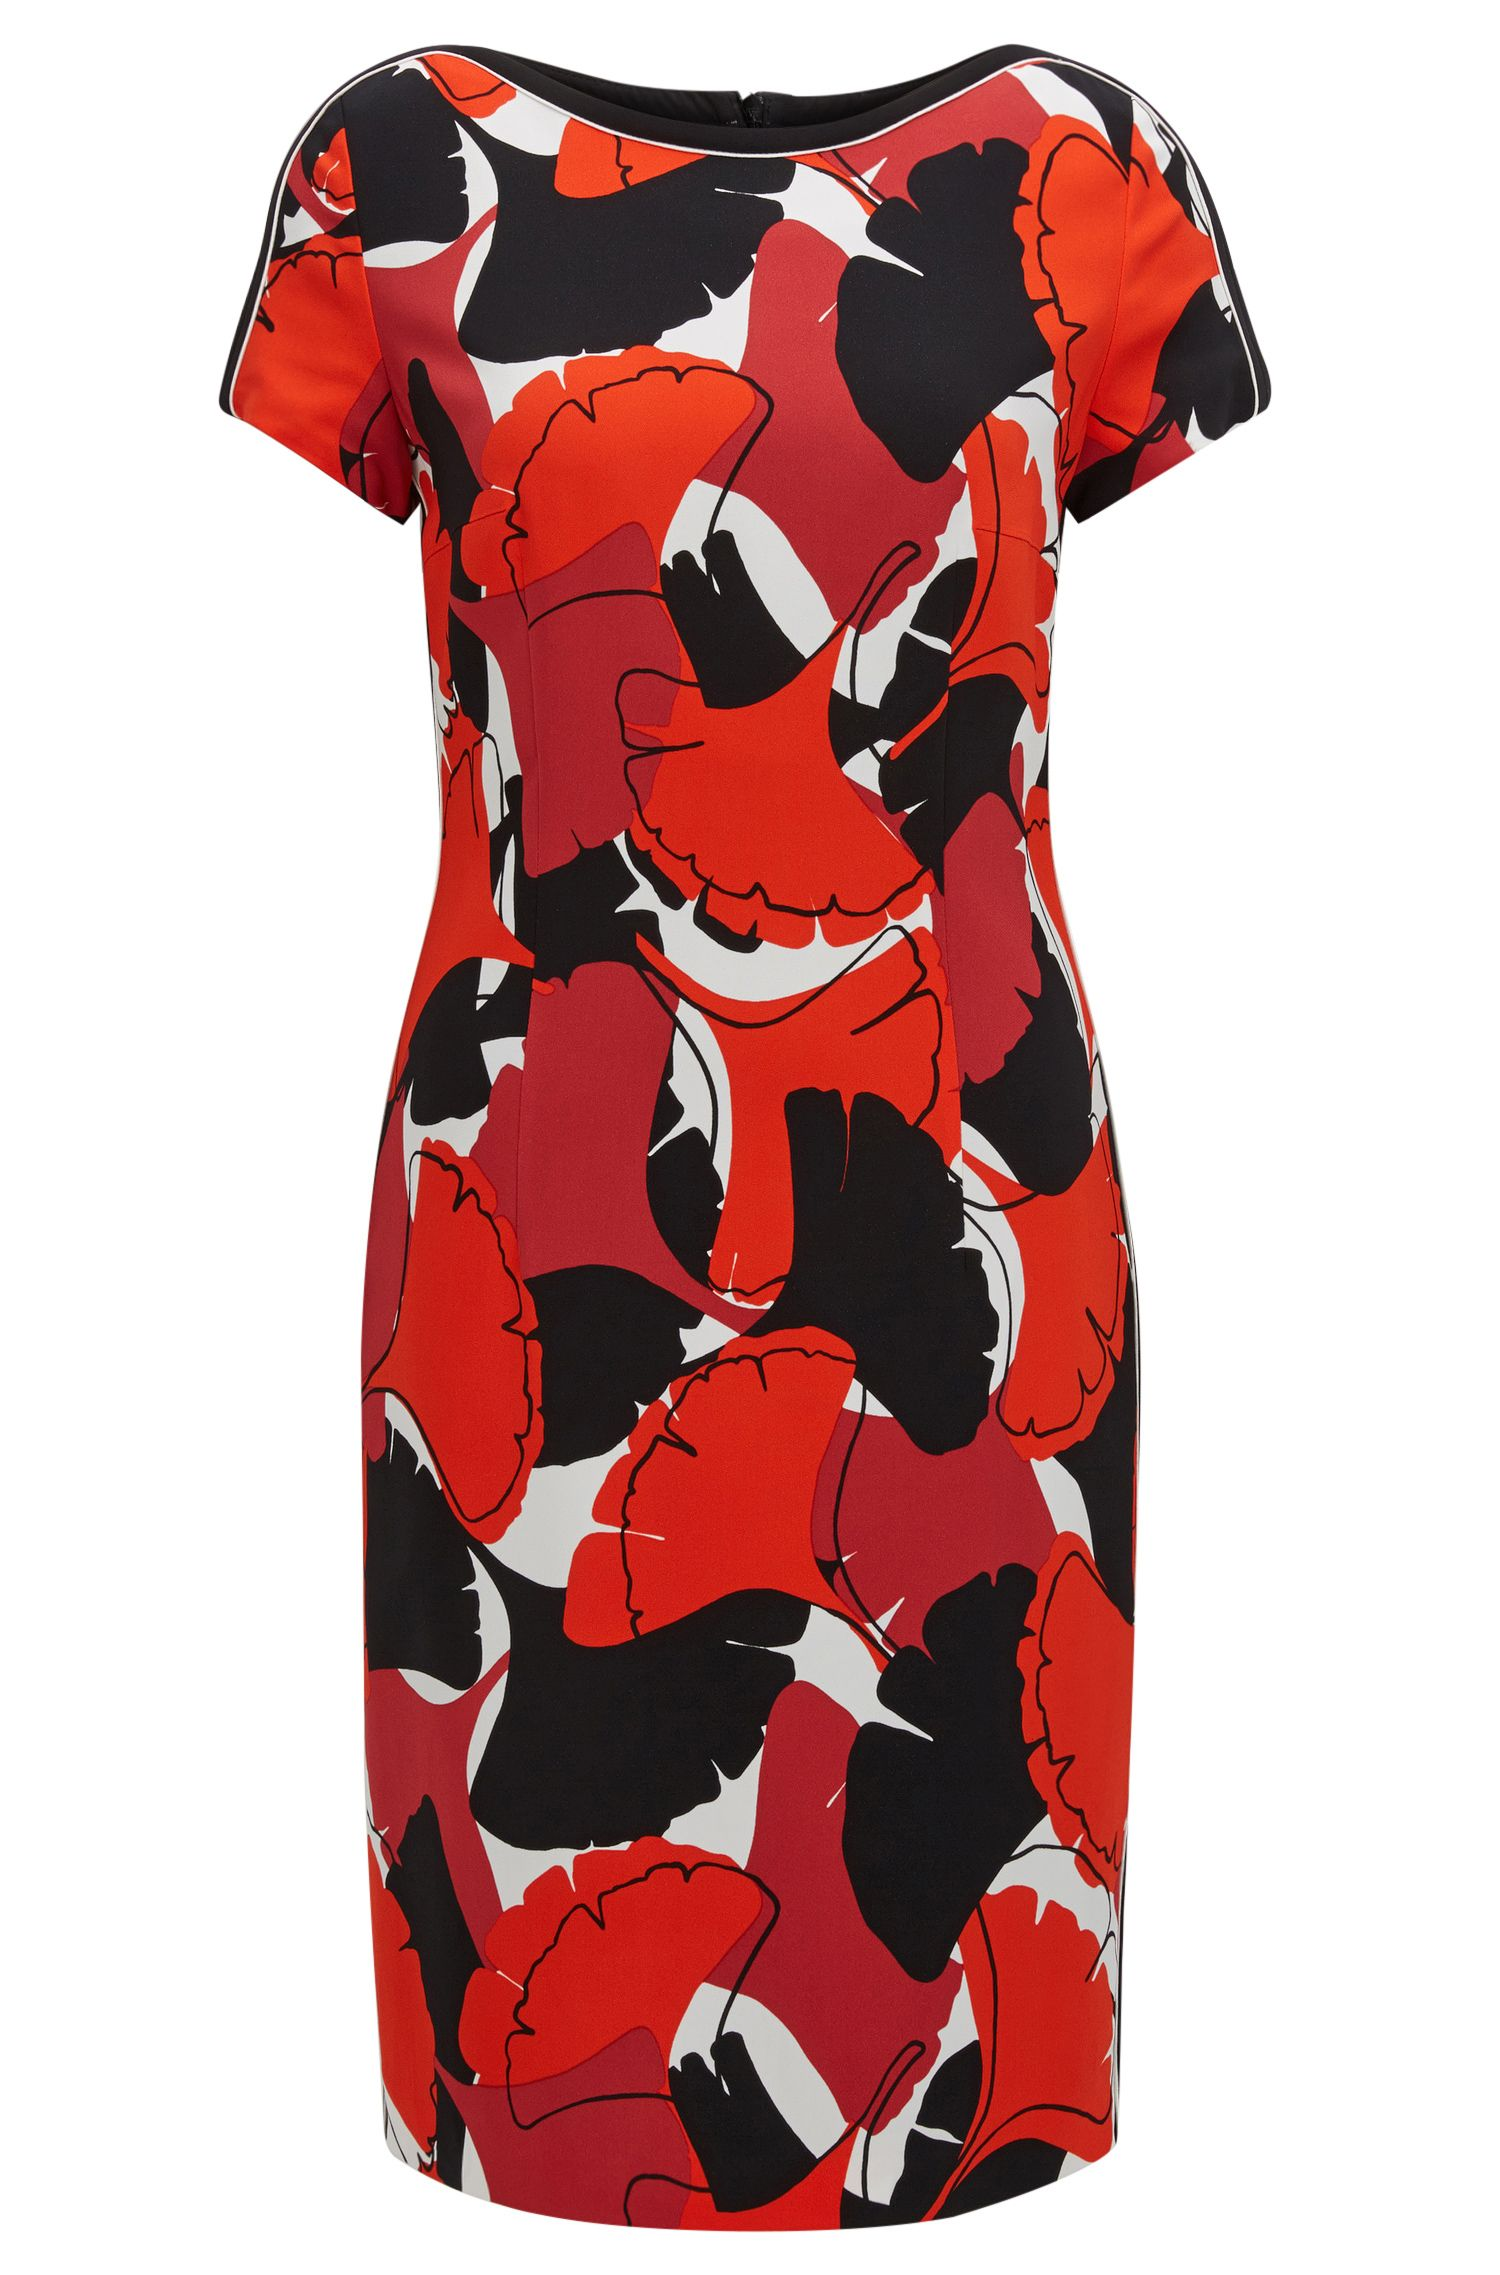 Sheath dress in printed crêpe